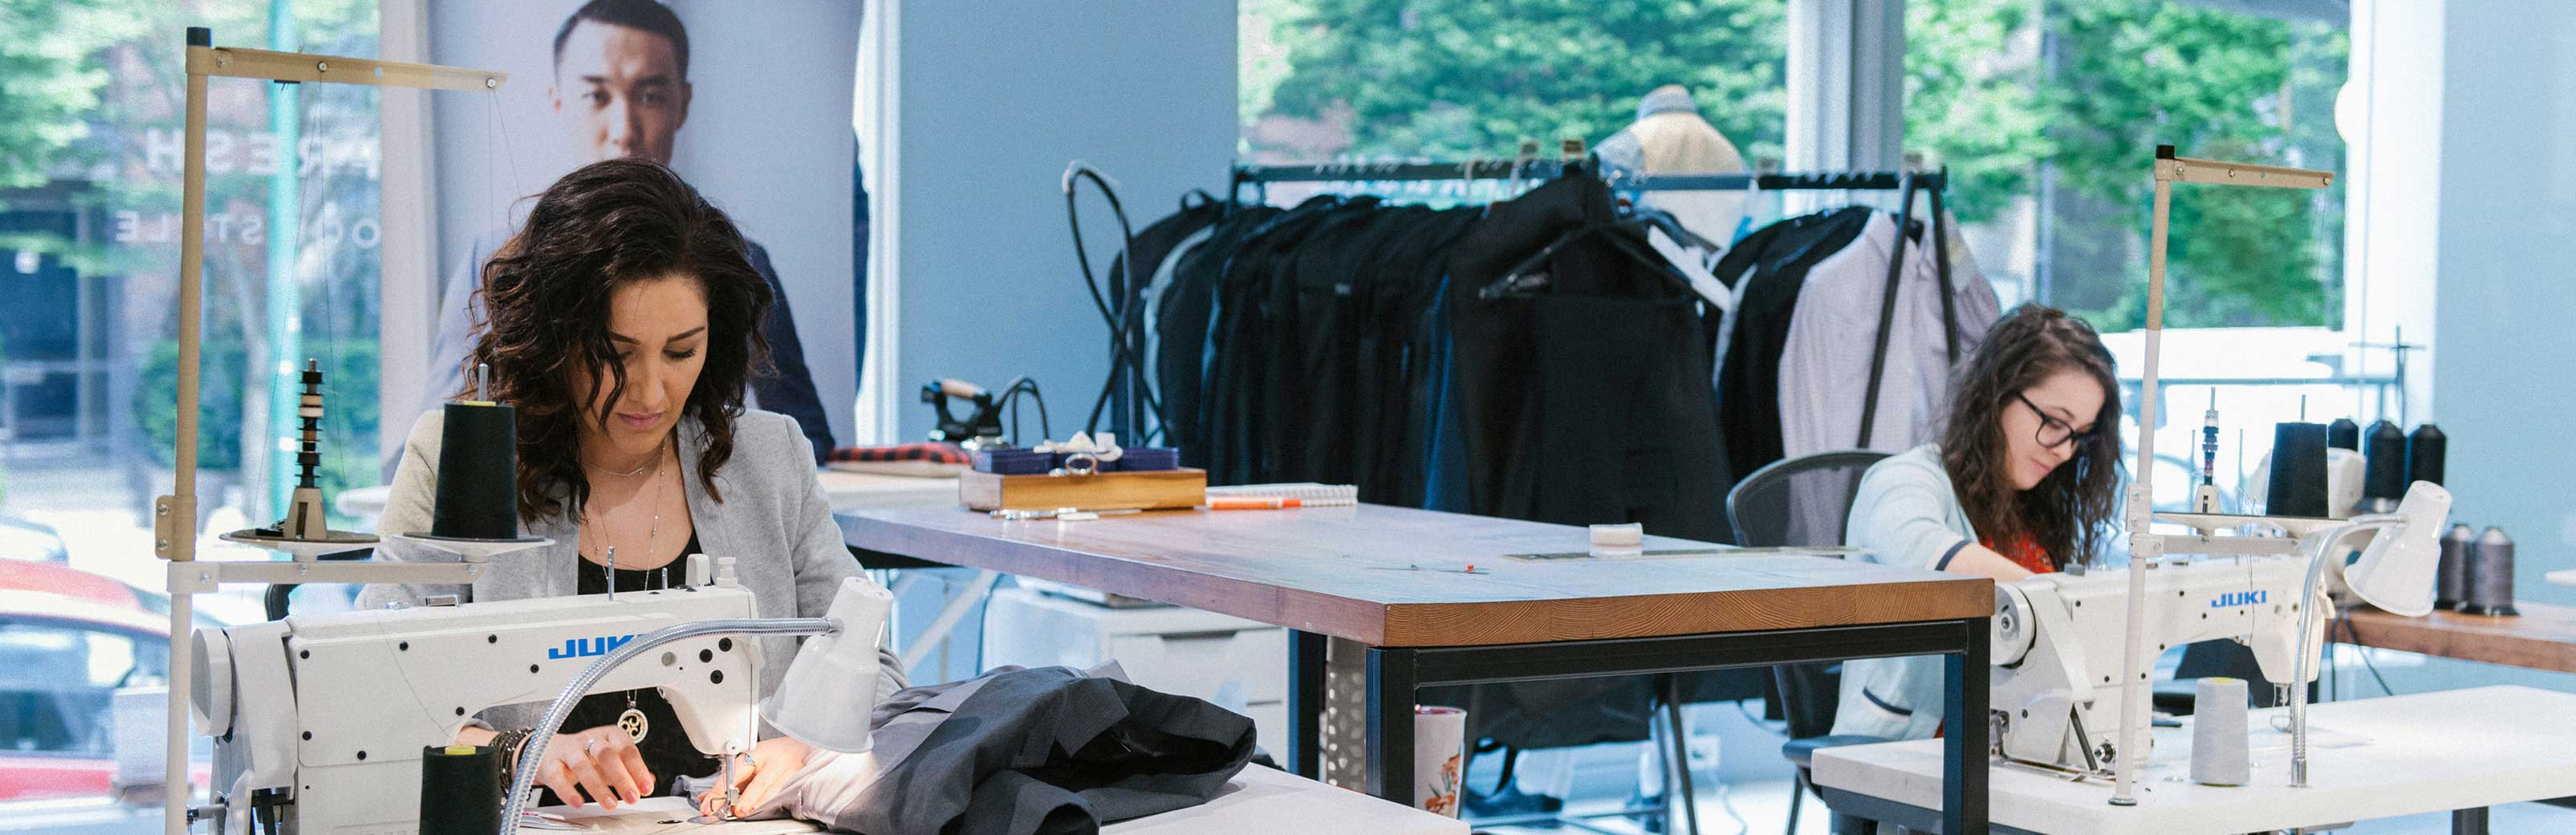 Two in-house tailors working on alterations.